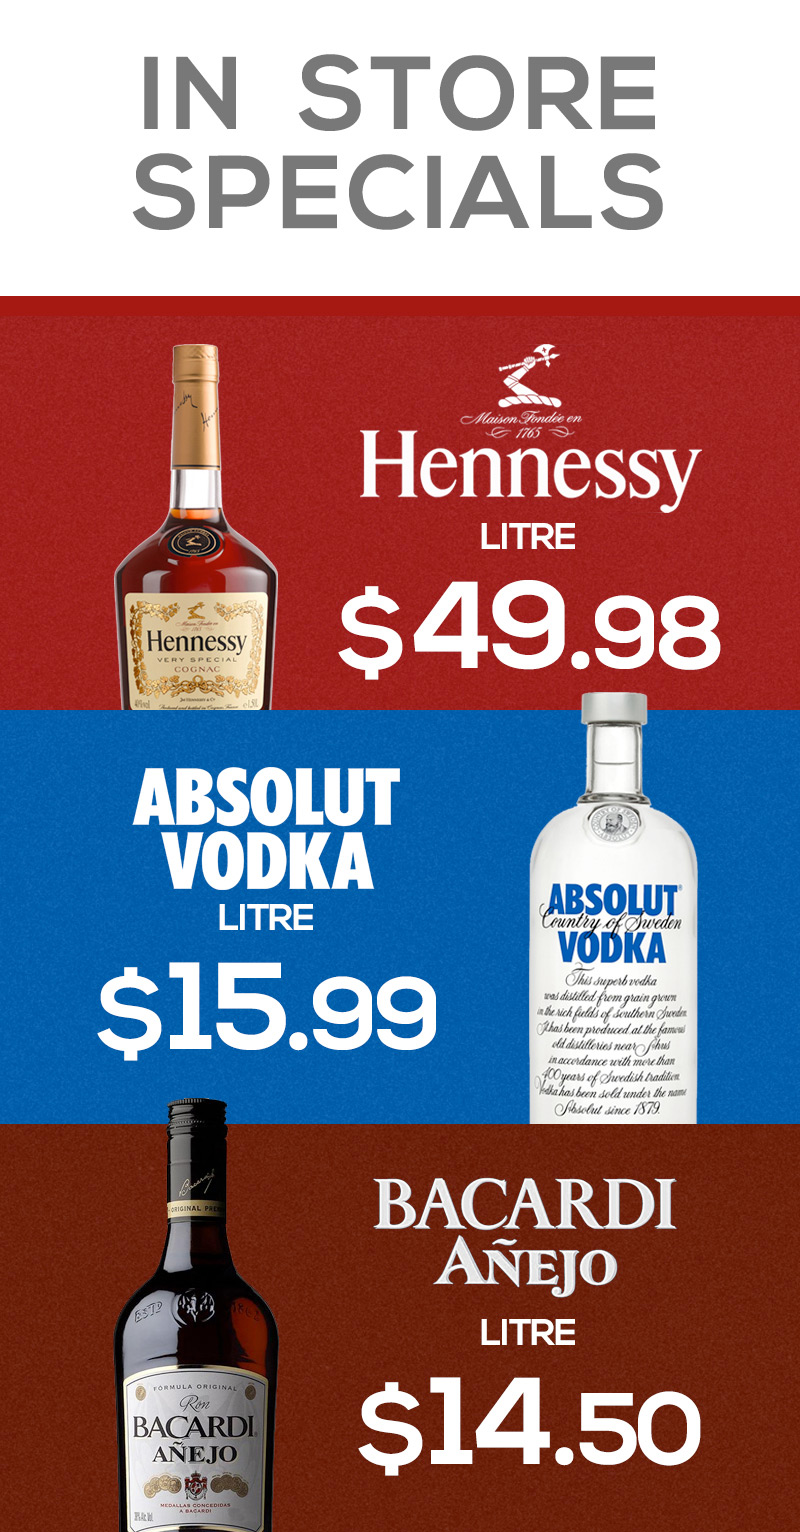 Hennessy VS Liter $49.98 | Absolut Vodka Liter $15.99 | Bacardi Anejo Liter $14.50. All Prices VAT Inclusive